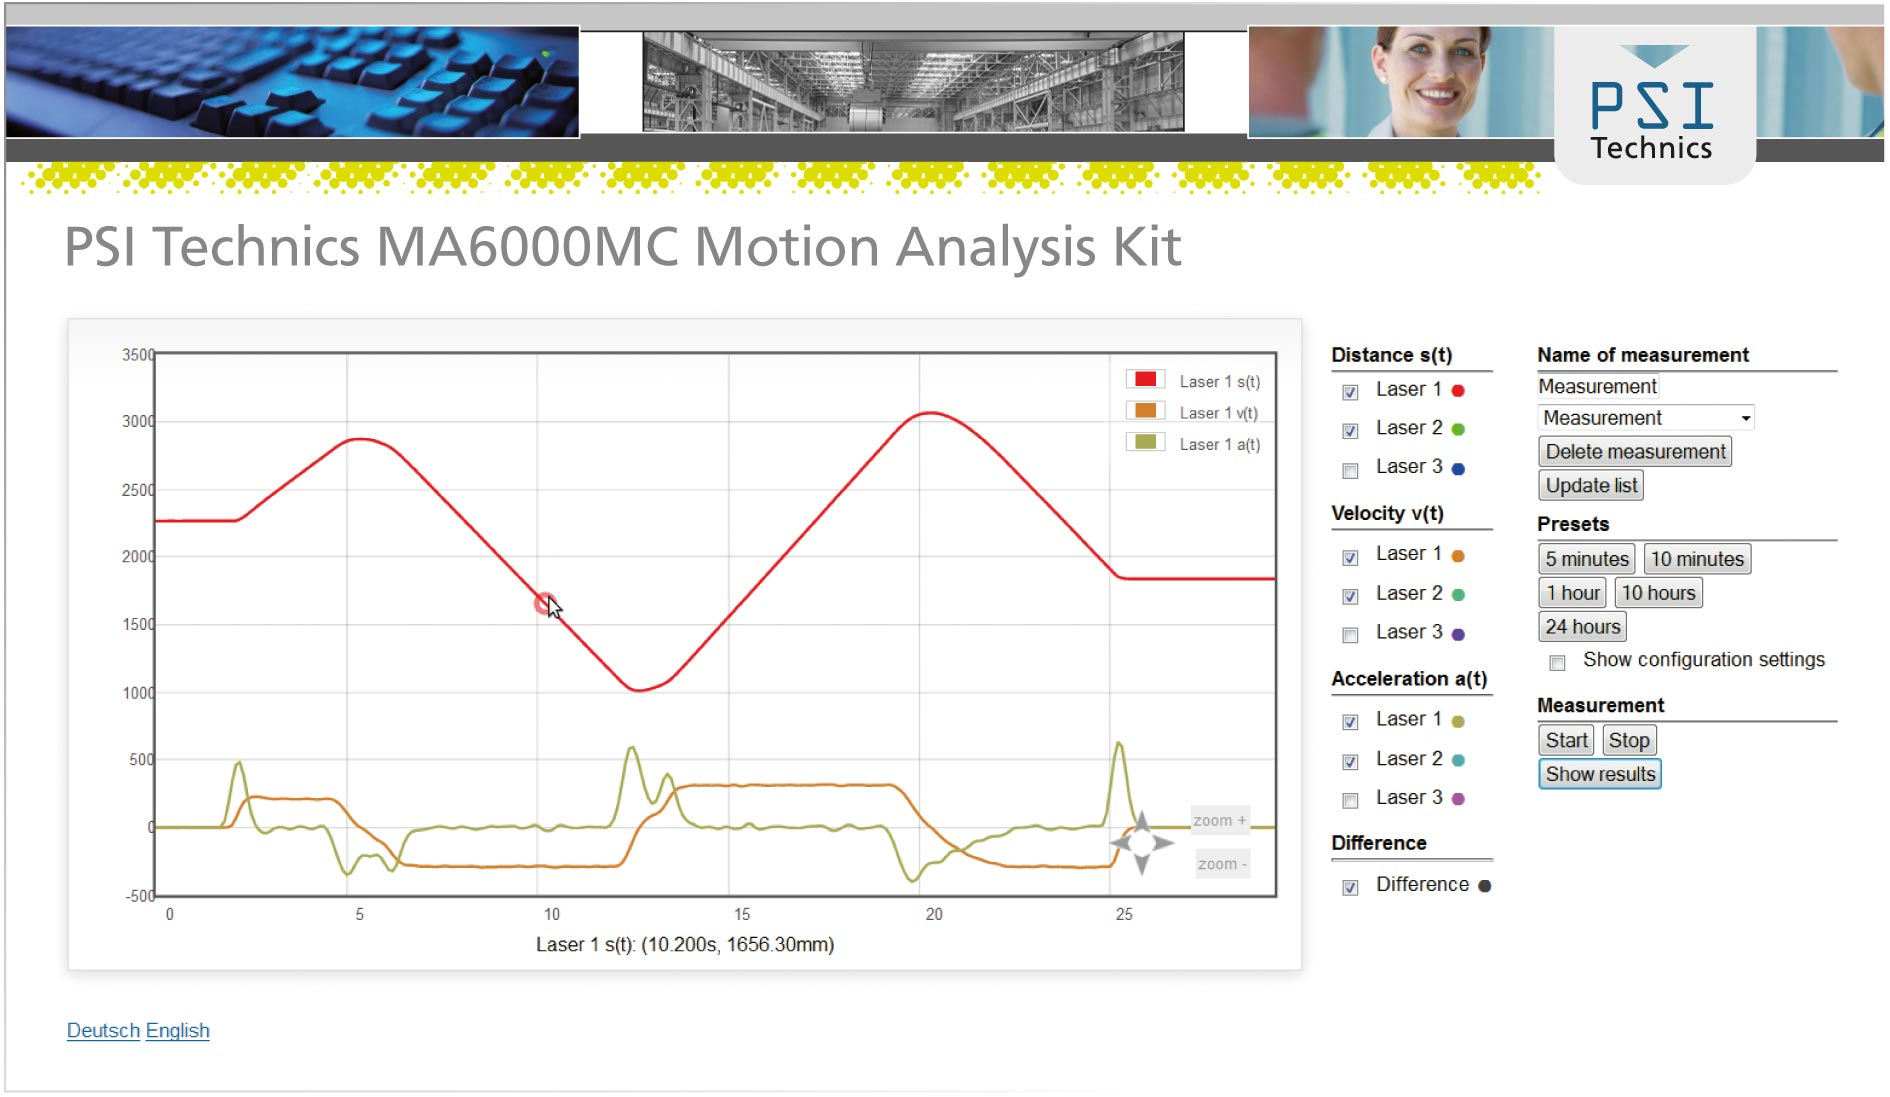 Providing a user-friendly and meaningful analysis of up to 3 axes – conveniently via the MA6000MC web interface